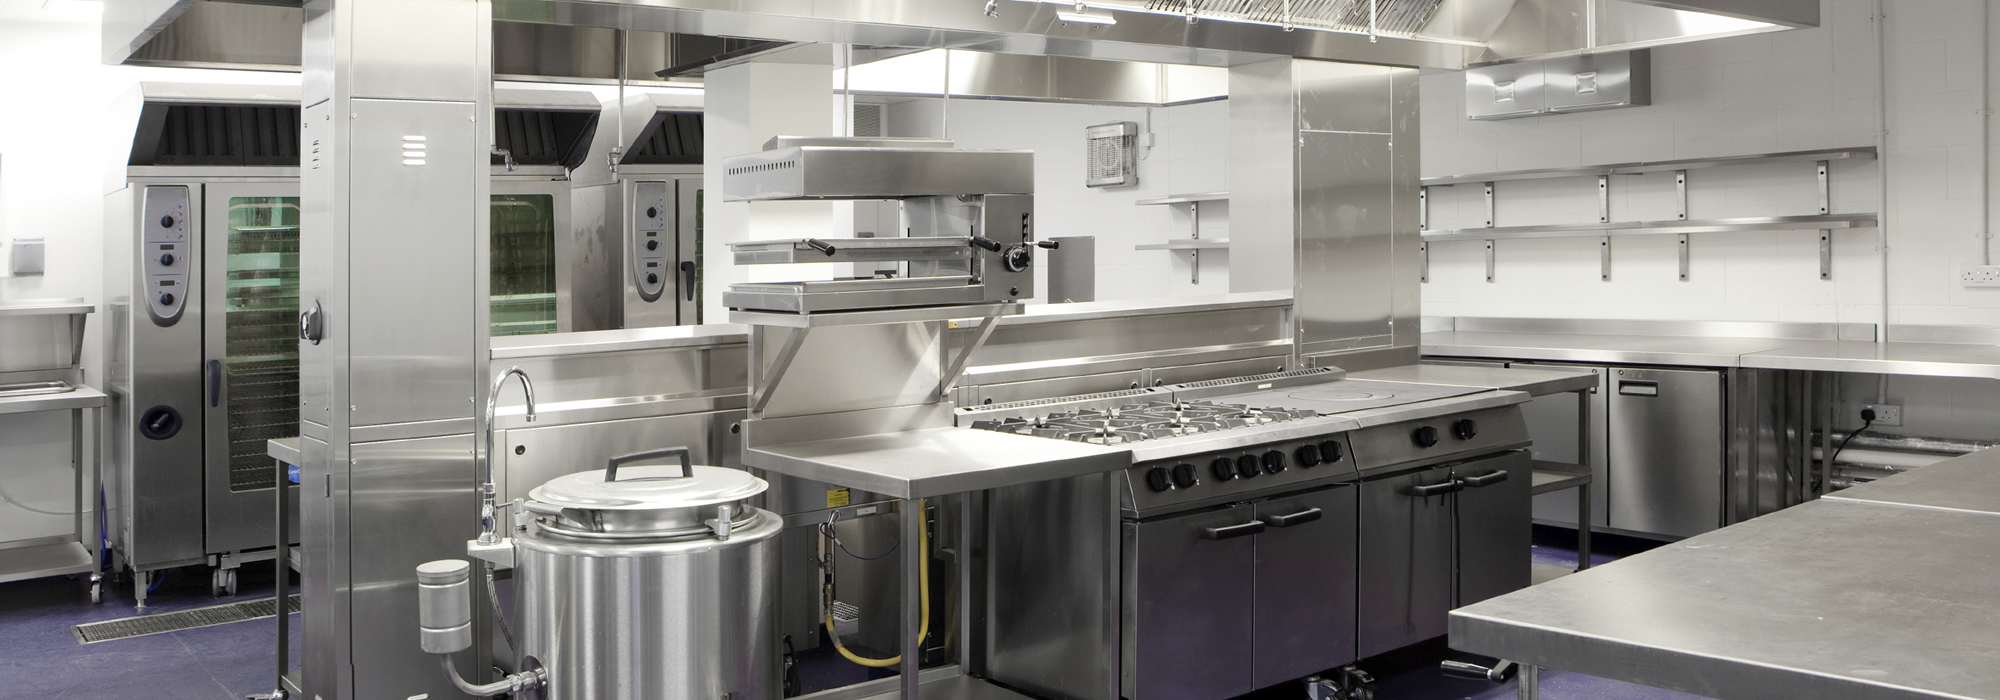 Commercial Kitchen Equipment Maintenance Services - EscoRefresh